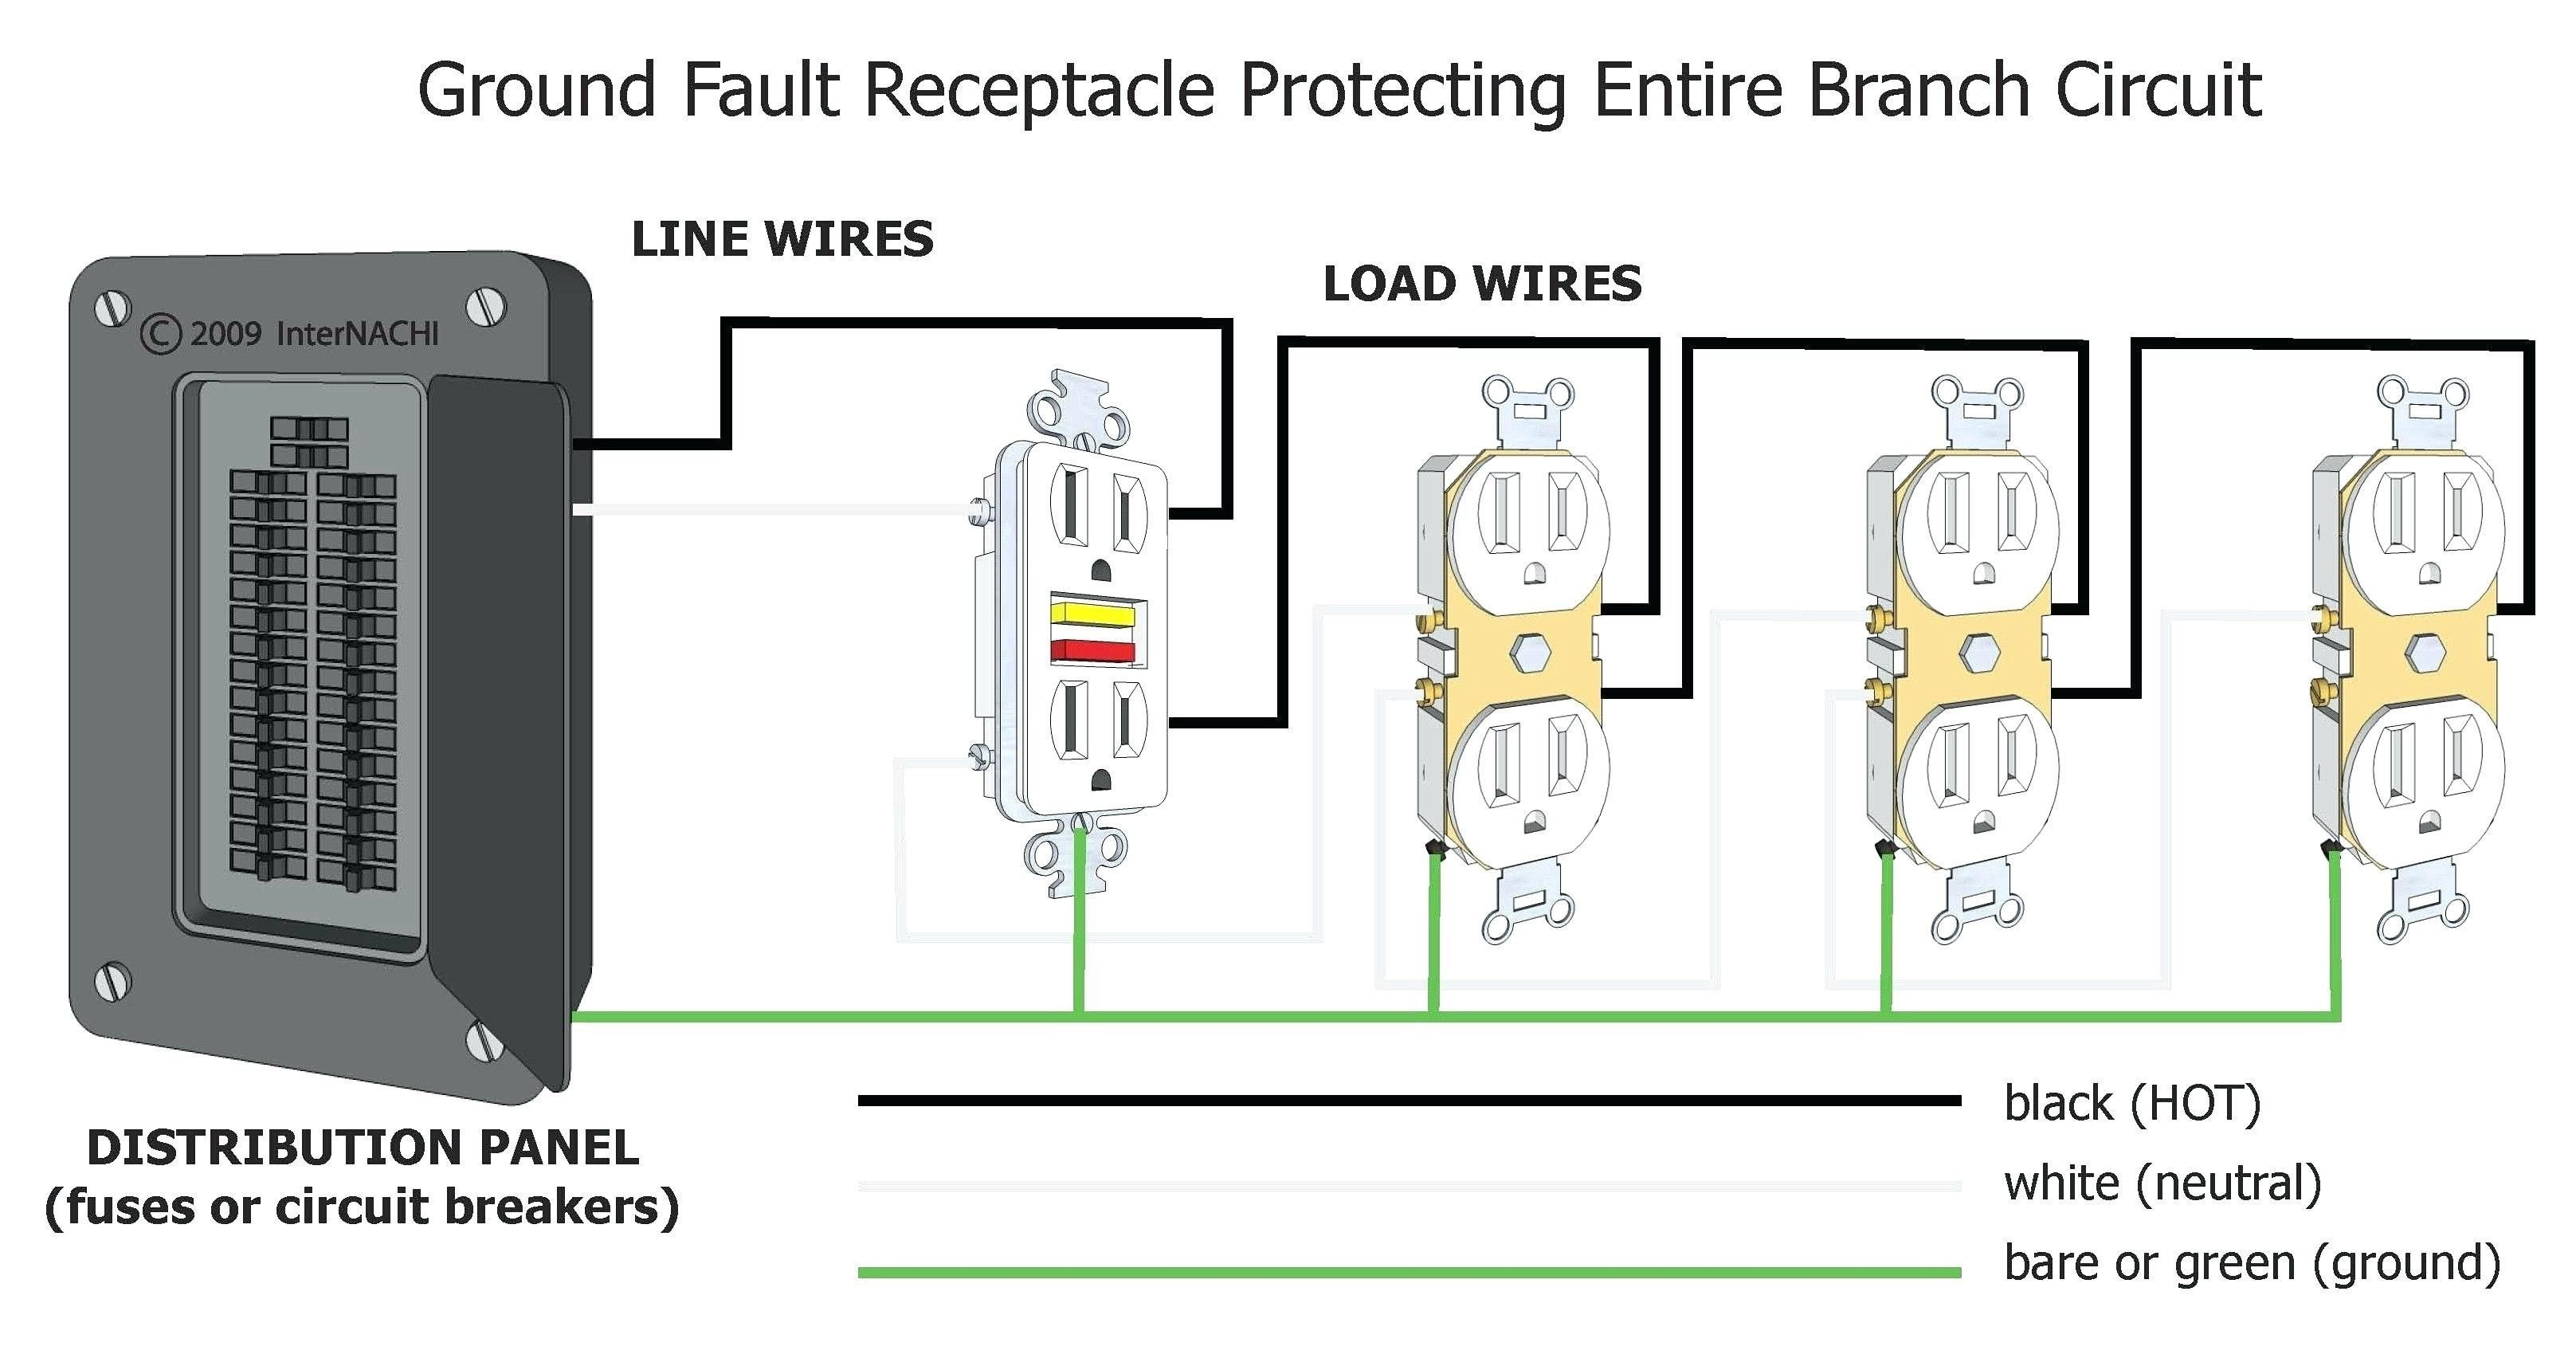 New Wiring Diagram for A Smart House #diagram #diagramsample  #diagramtemplate #wiringdiagram #diagramchar… | House wiring, Electrical  circuit diagram, Outlet wiringPinterest